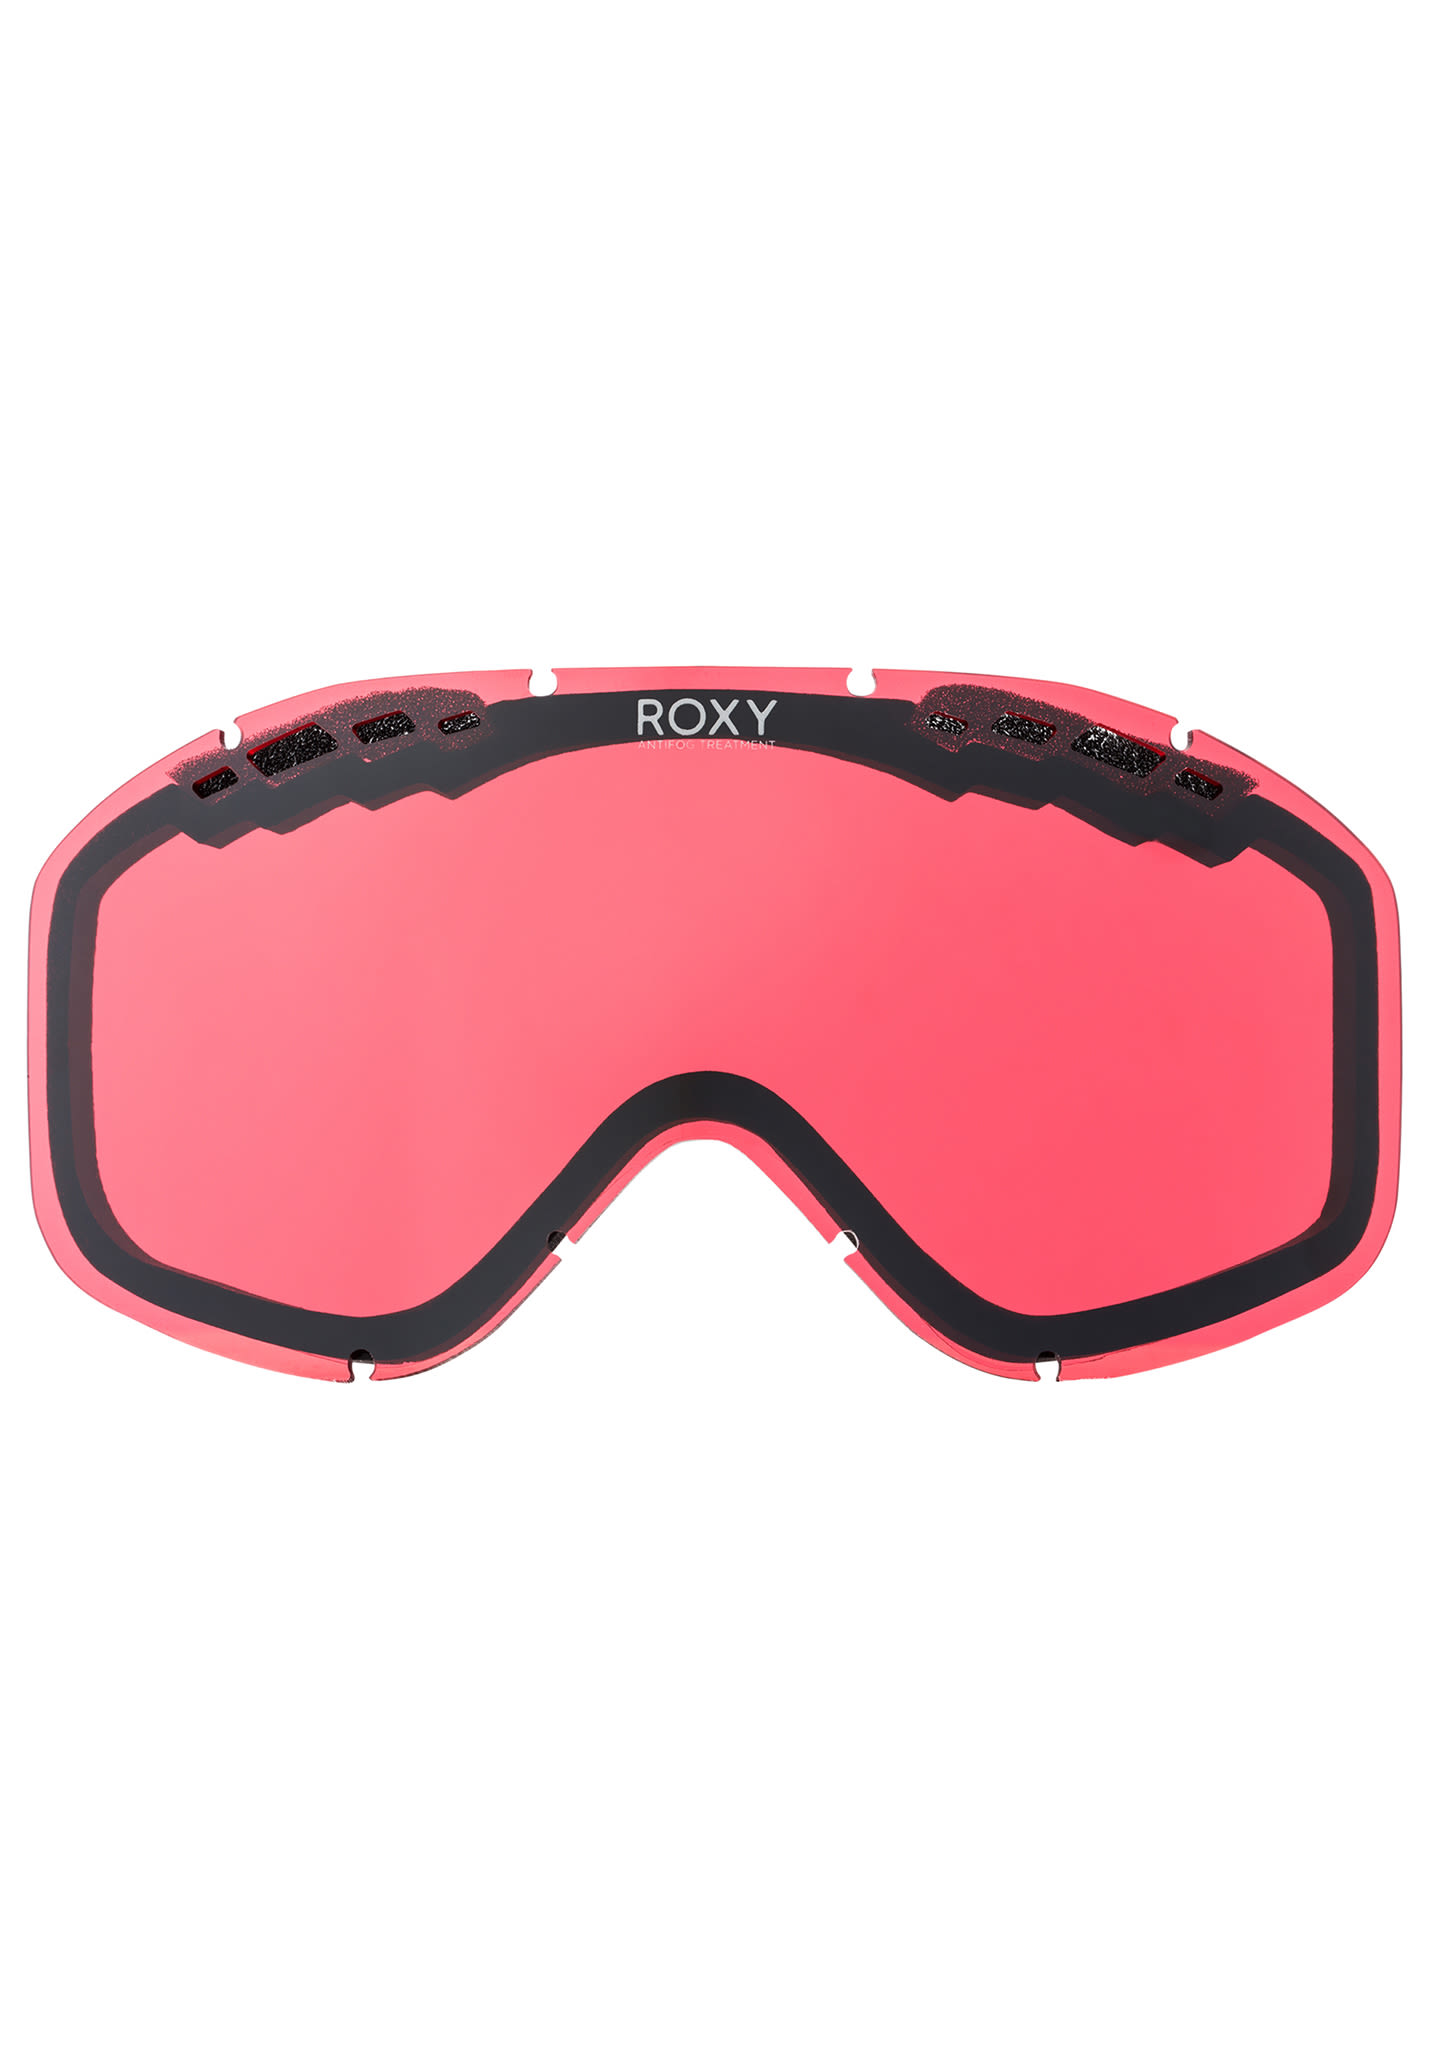 Roxy Sunset Mirror - Glasses for Women - Pink - Planet Sports 0b2cc3adc0